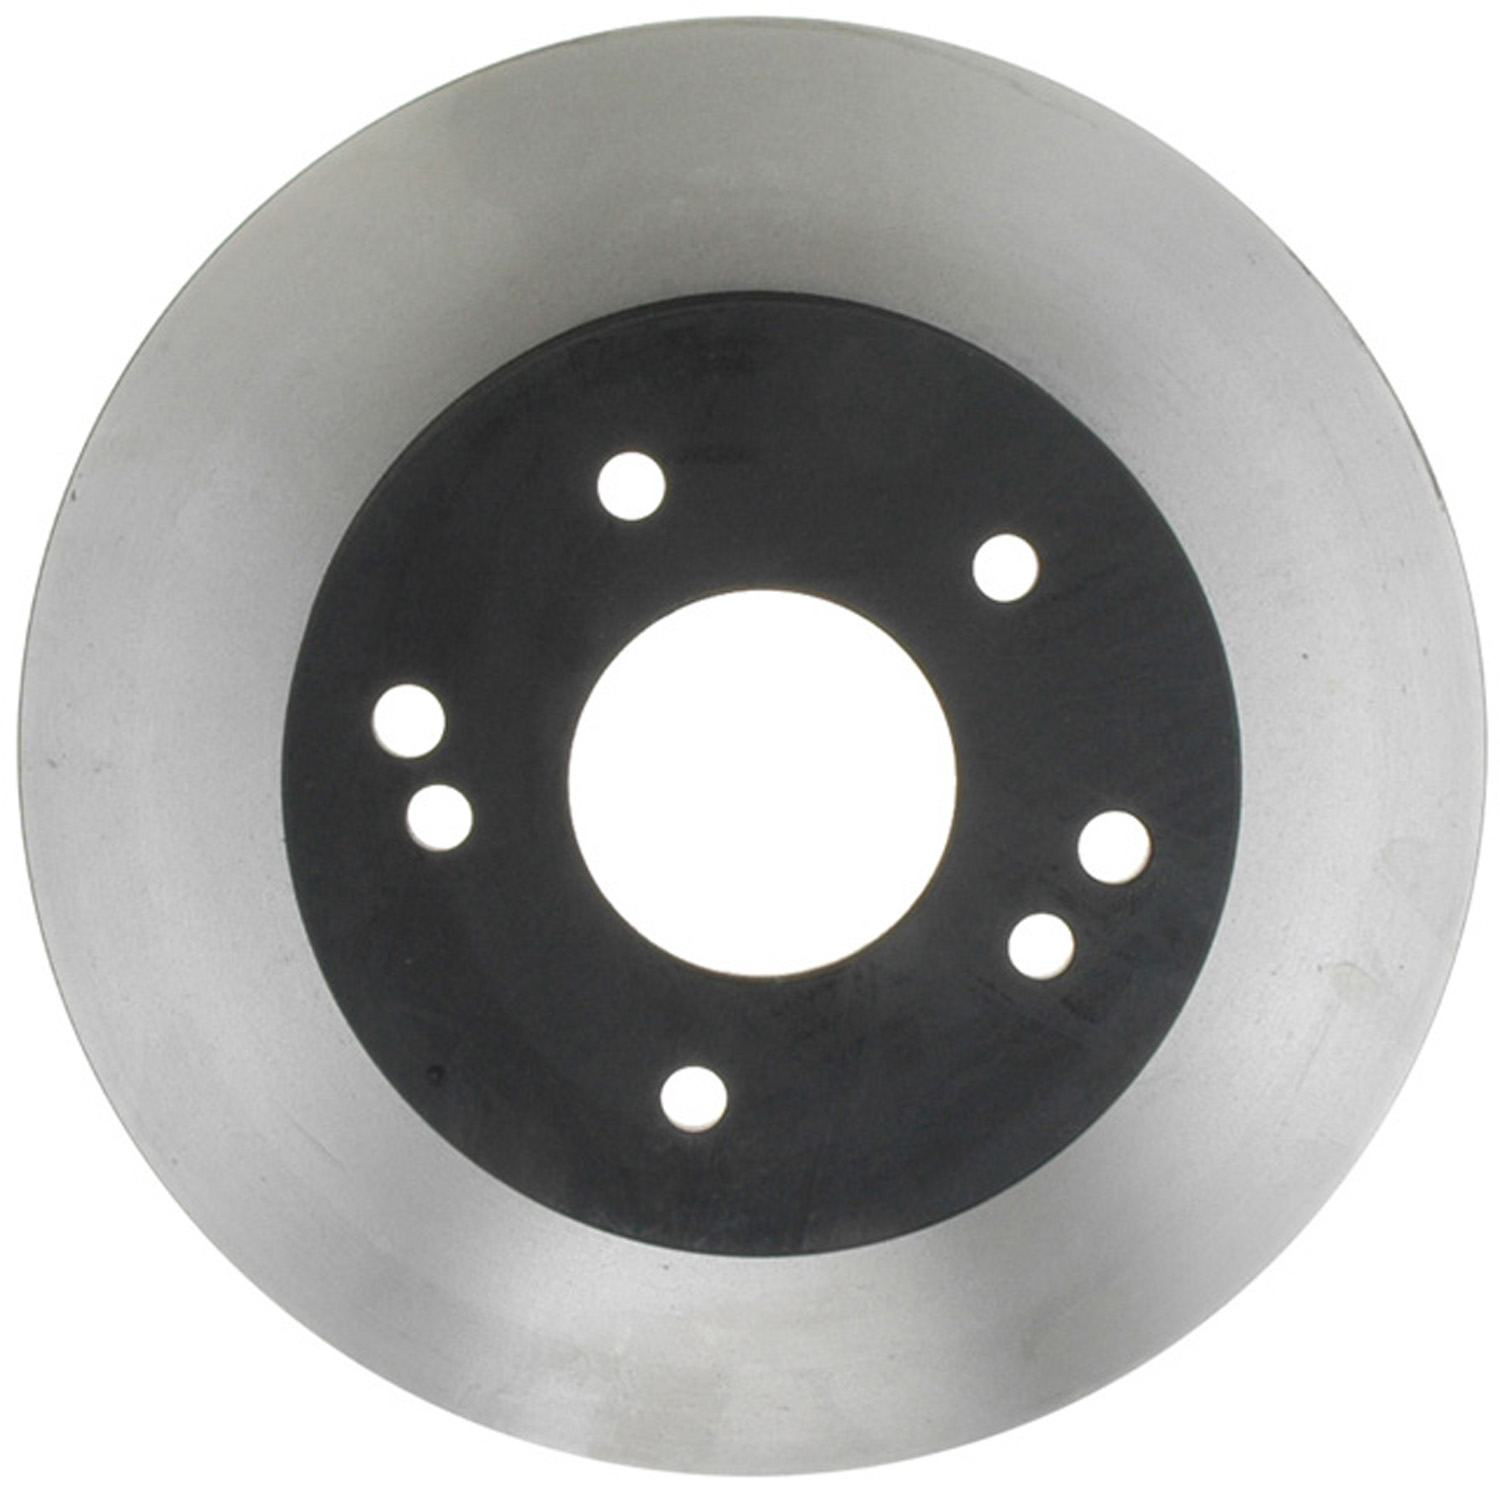 ACDELCO PROFESSIONAL BRAKES - Disc Brake Rotor (Rear) - ADU 18A101